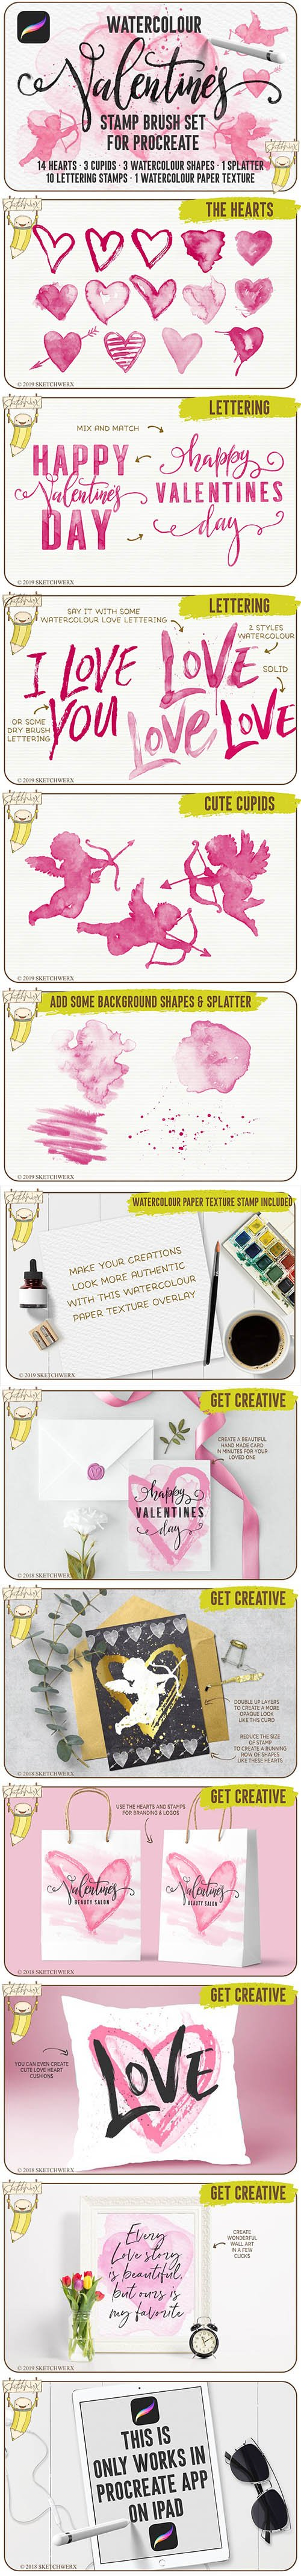 CreativeMarket - Watercolour Valentines Stamp Set 3378623